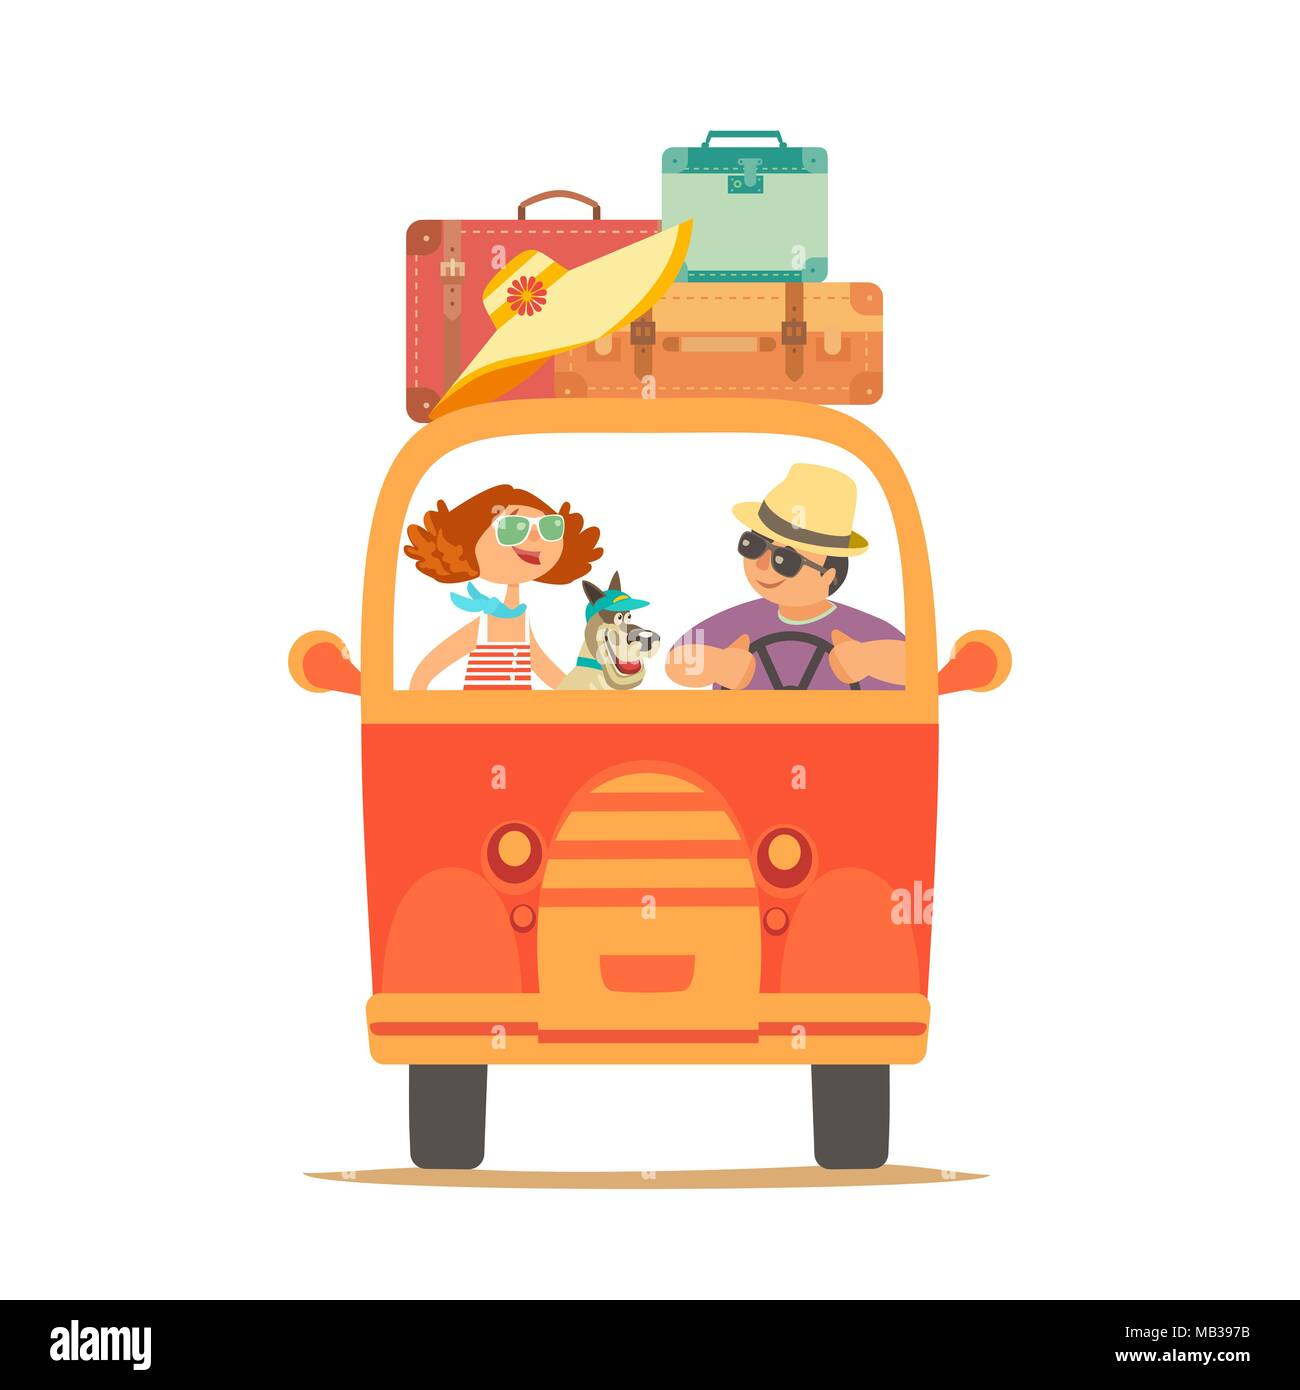 Travelling by car icon - Stock Vector